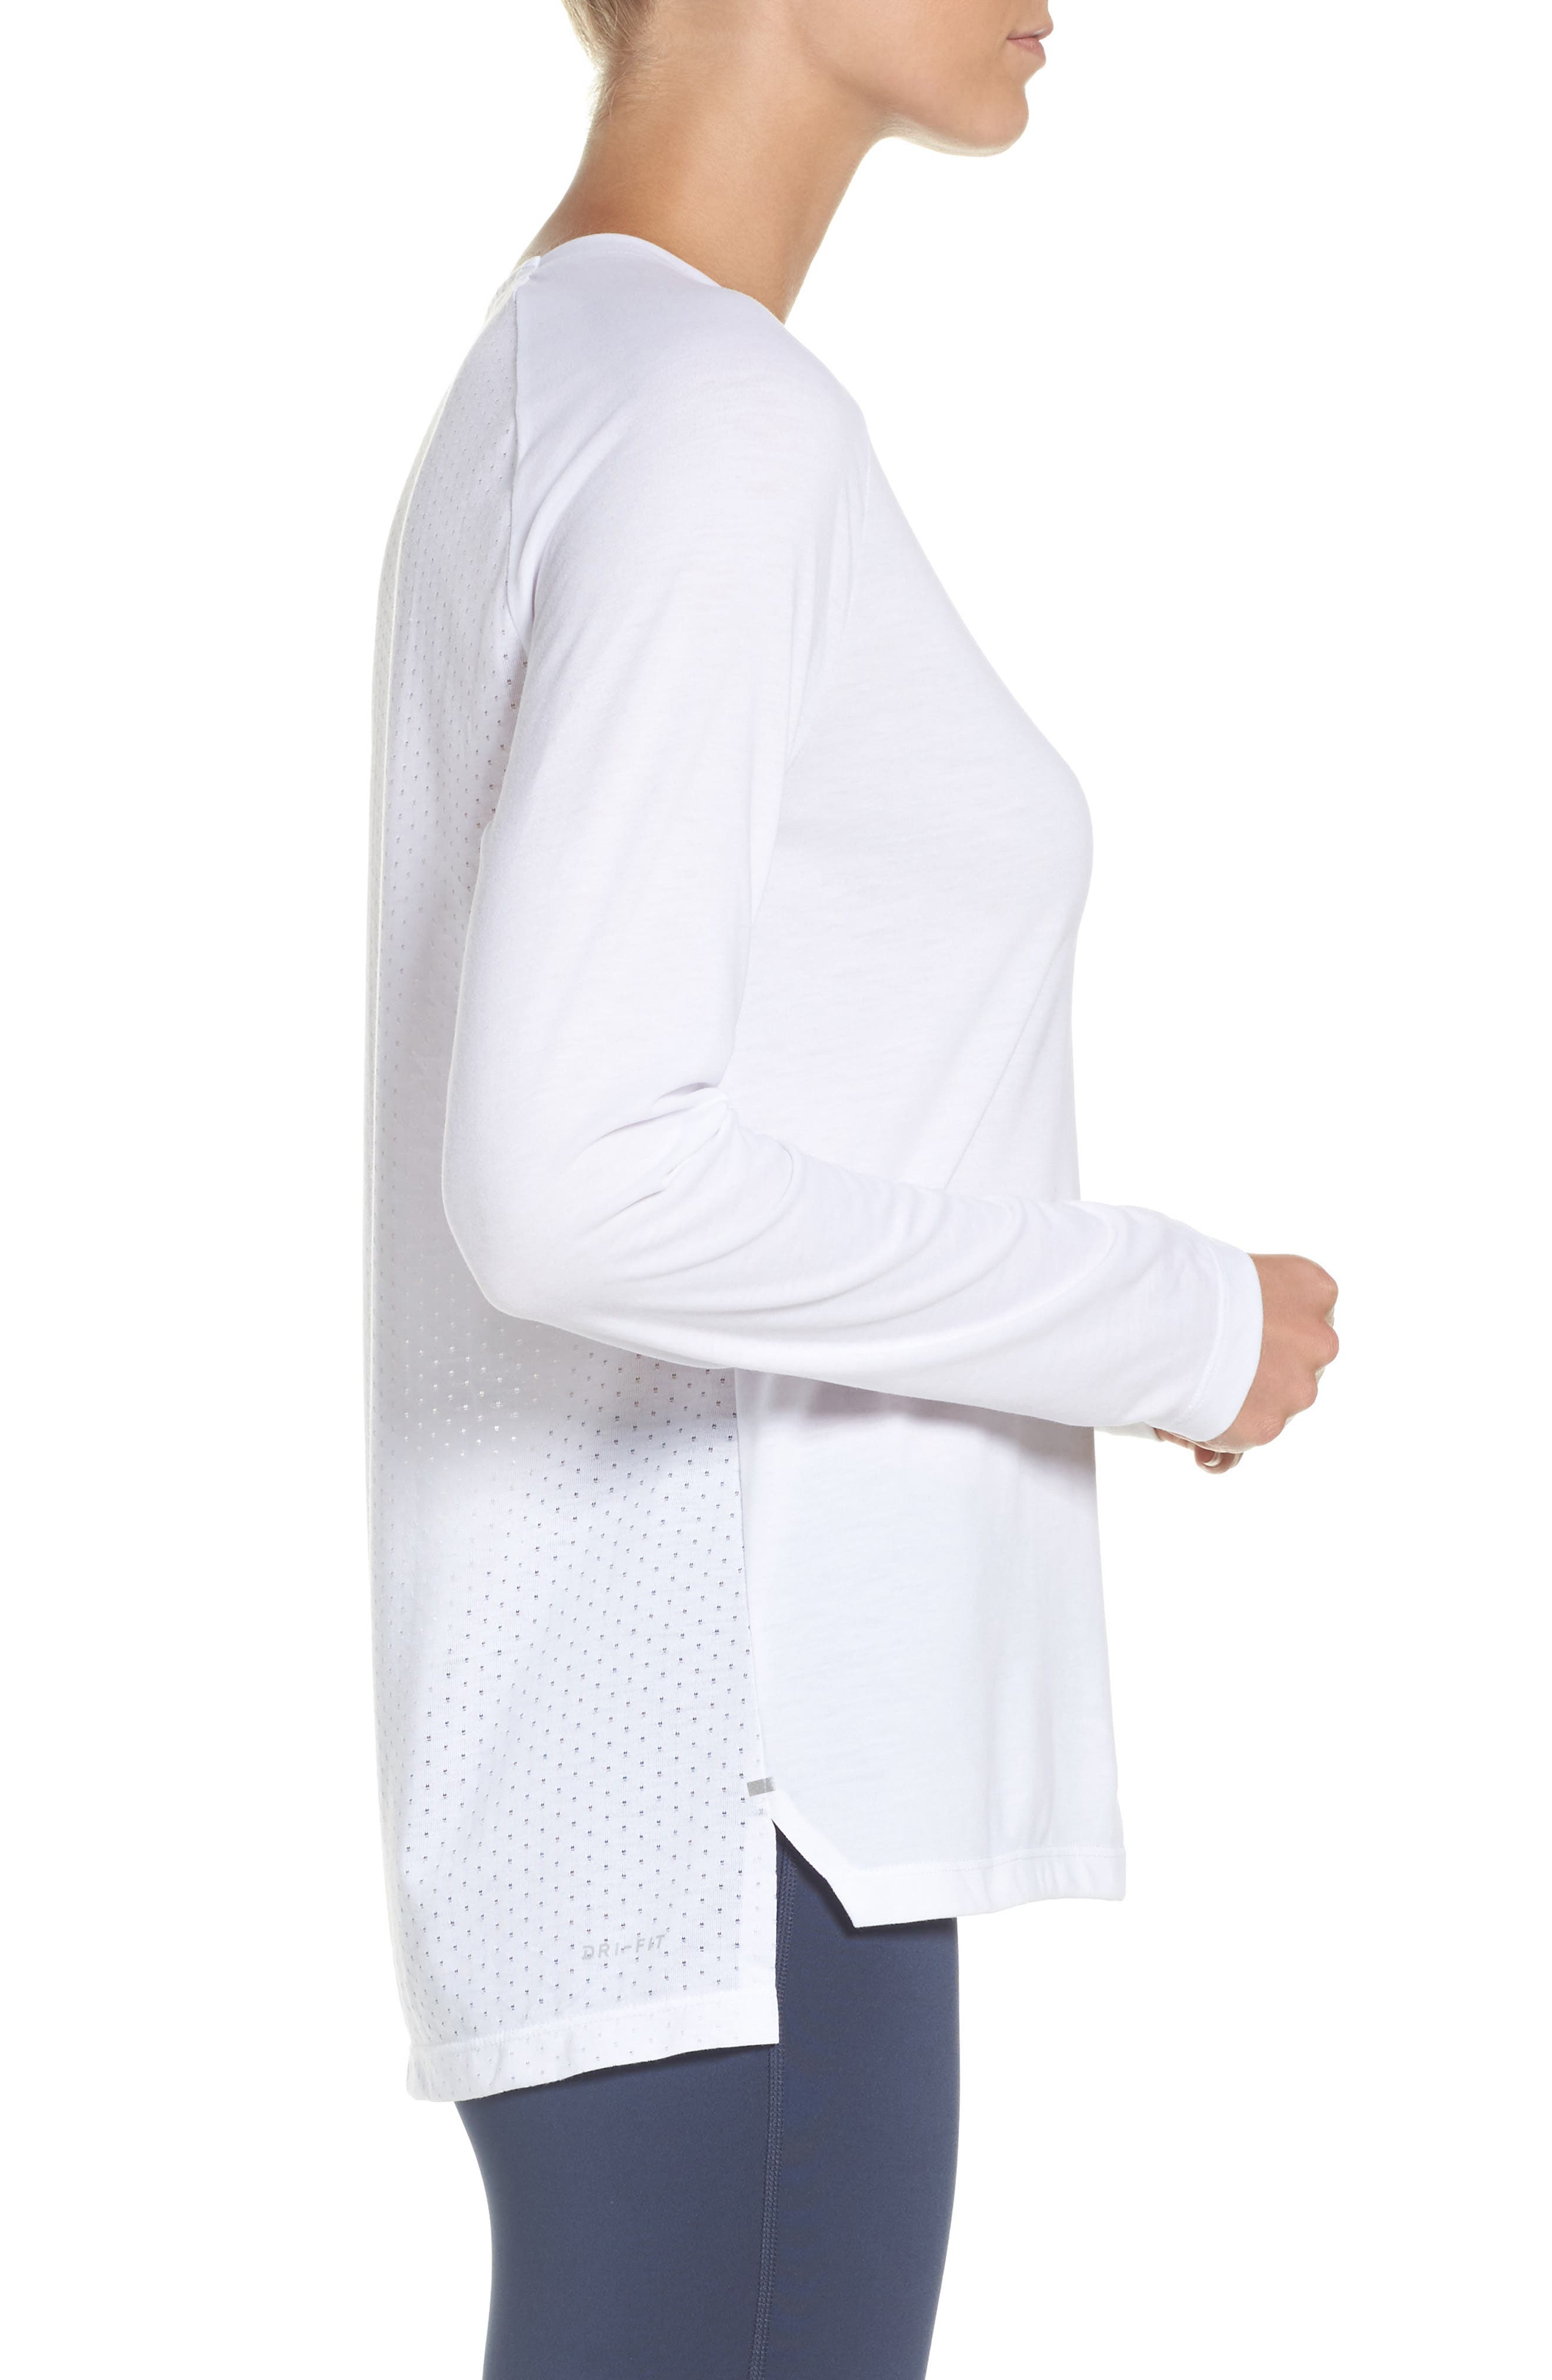 Breathe Tailwind Running Top,                             Alternate thumbnail 3, color,                             White